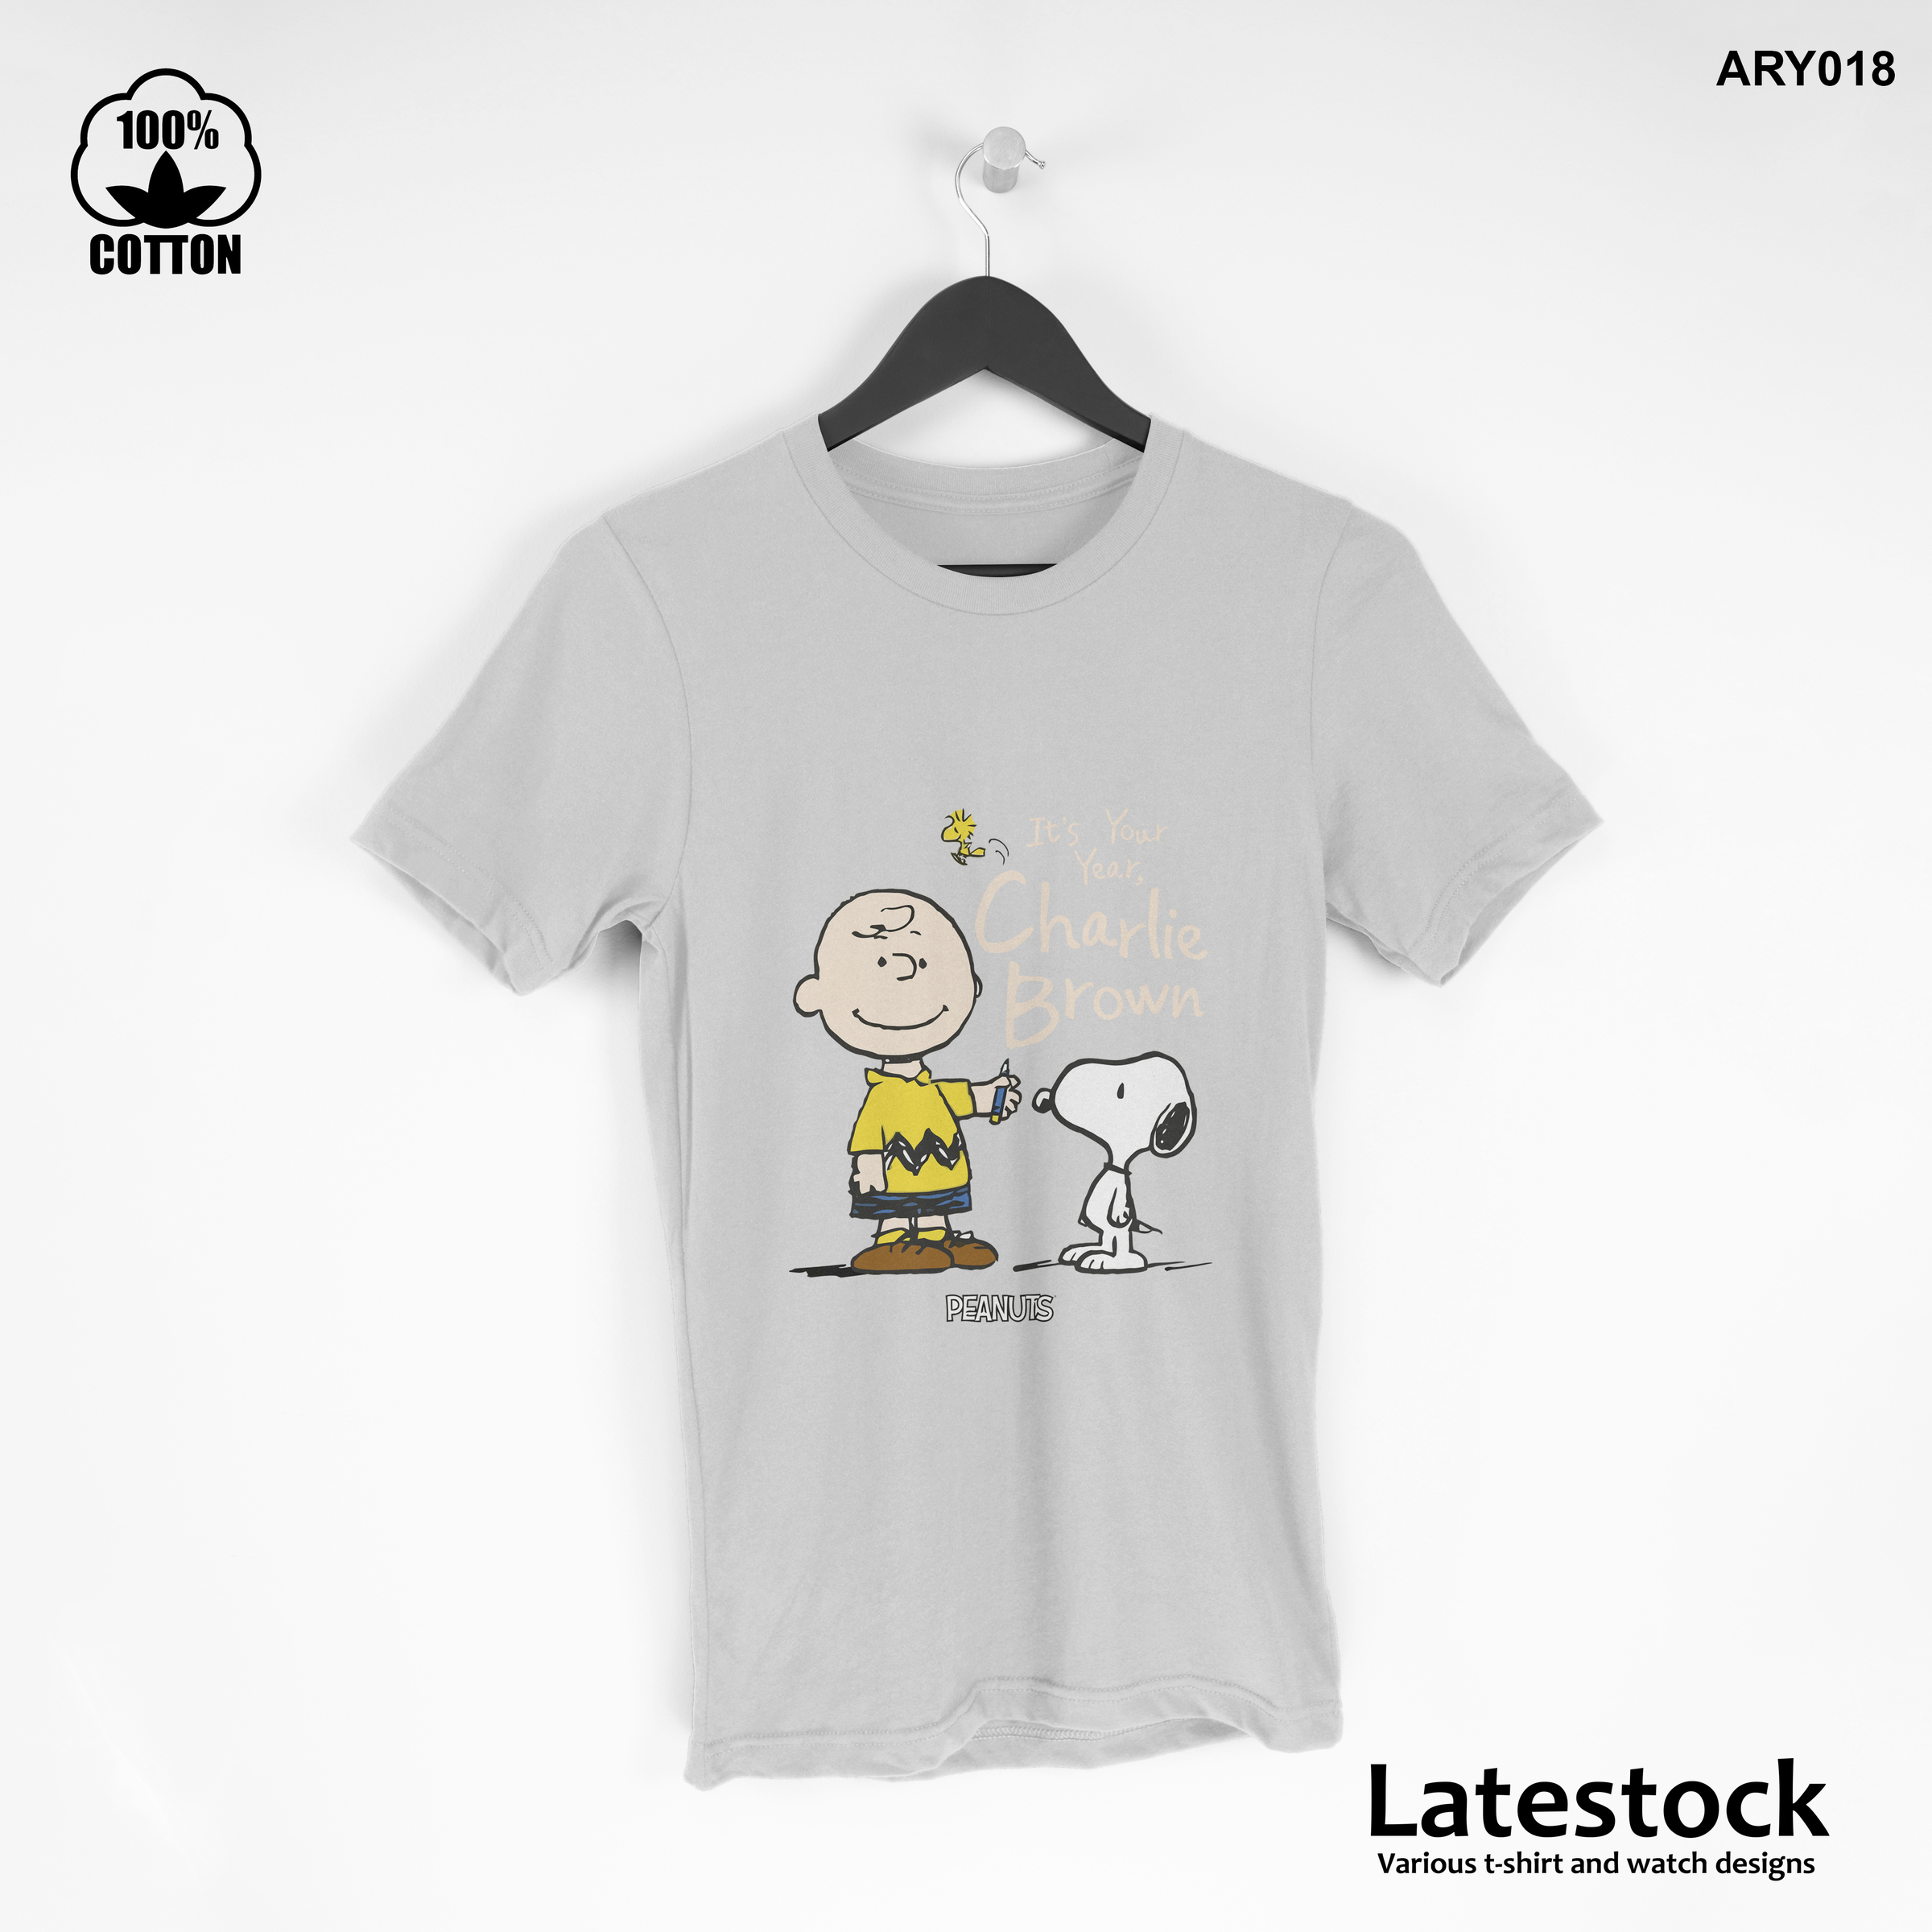 ARY018 Charlie brown GAINSBORO.jpg